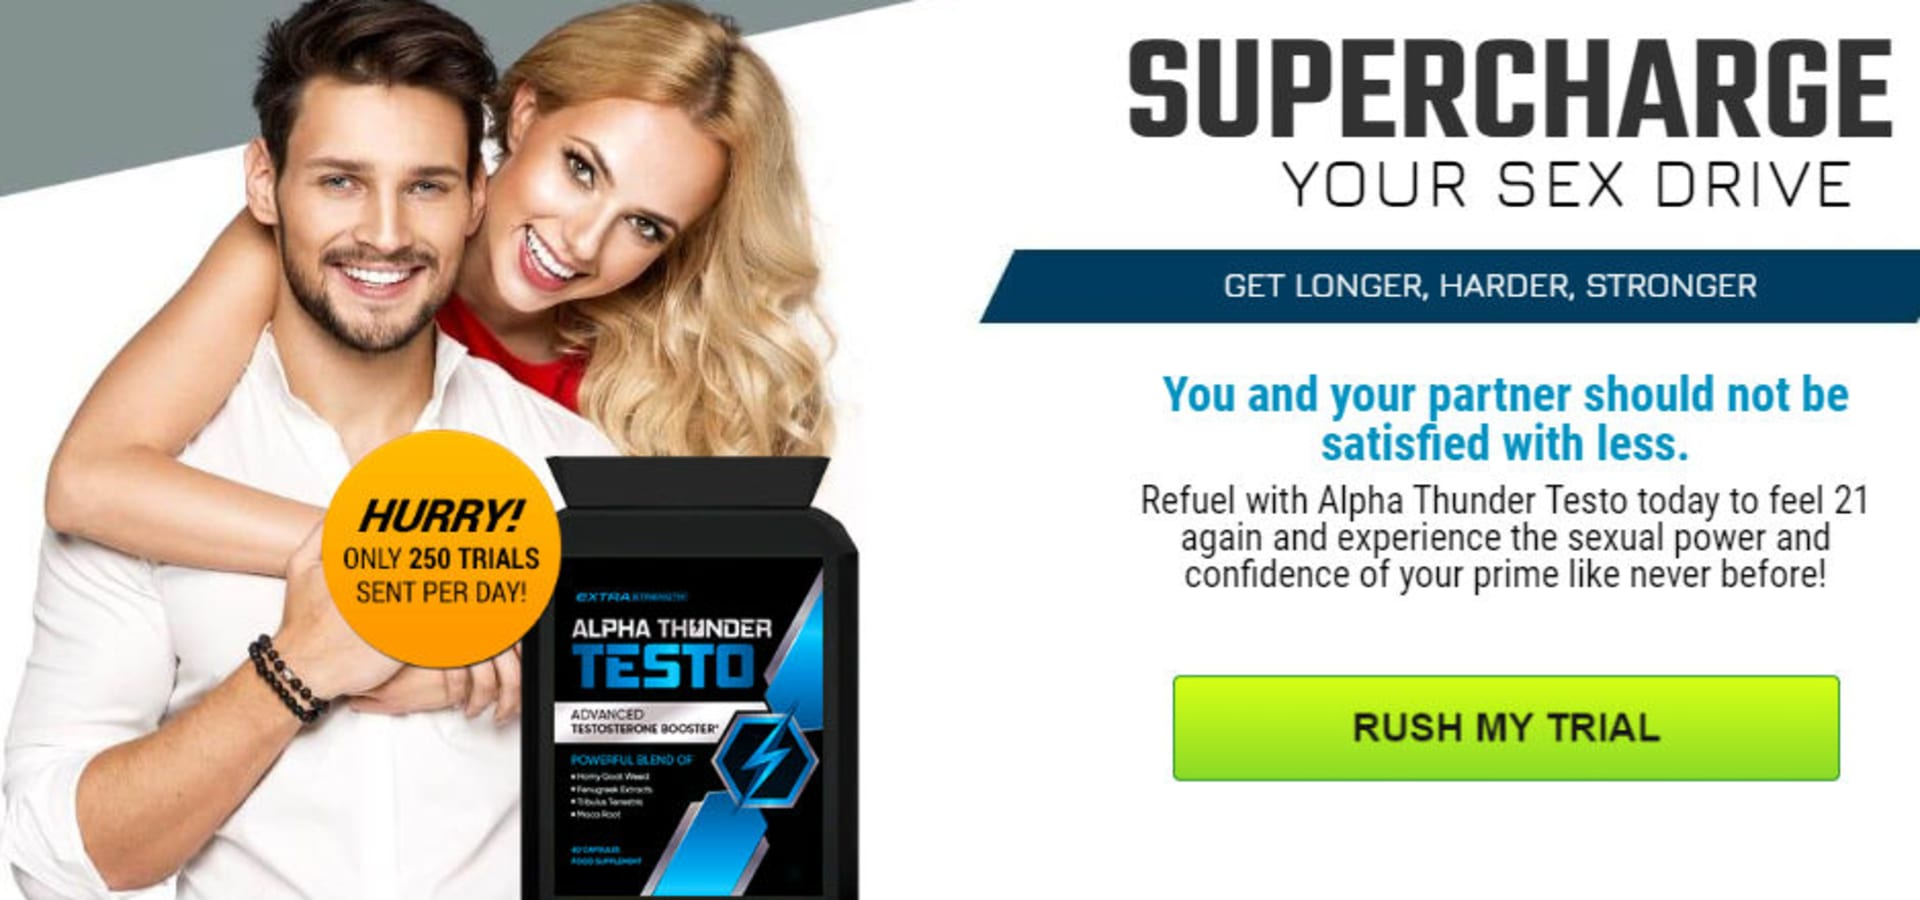 Alpha Thunder Testo [Canada]—100% Effective Testosterone Booster! Is It  Scam? | homify